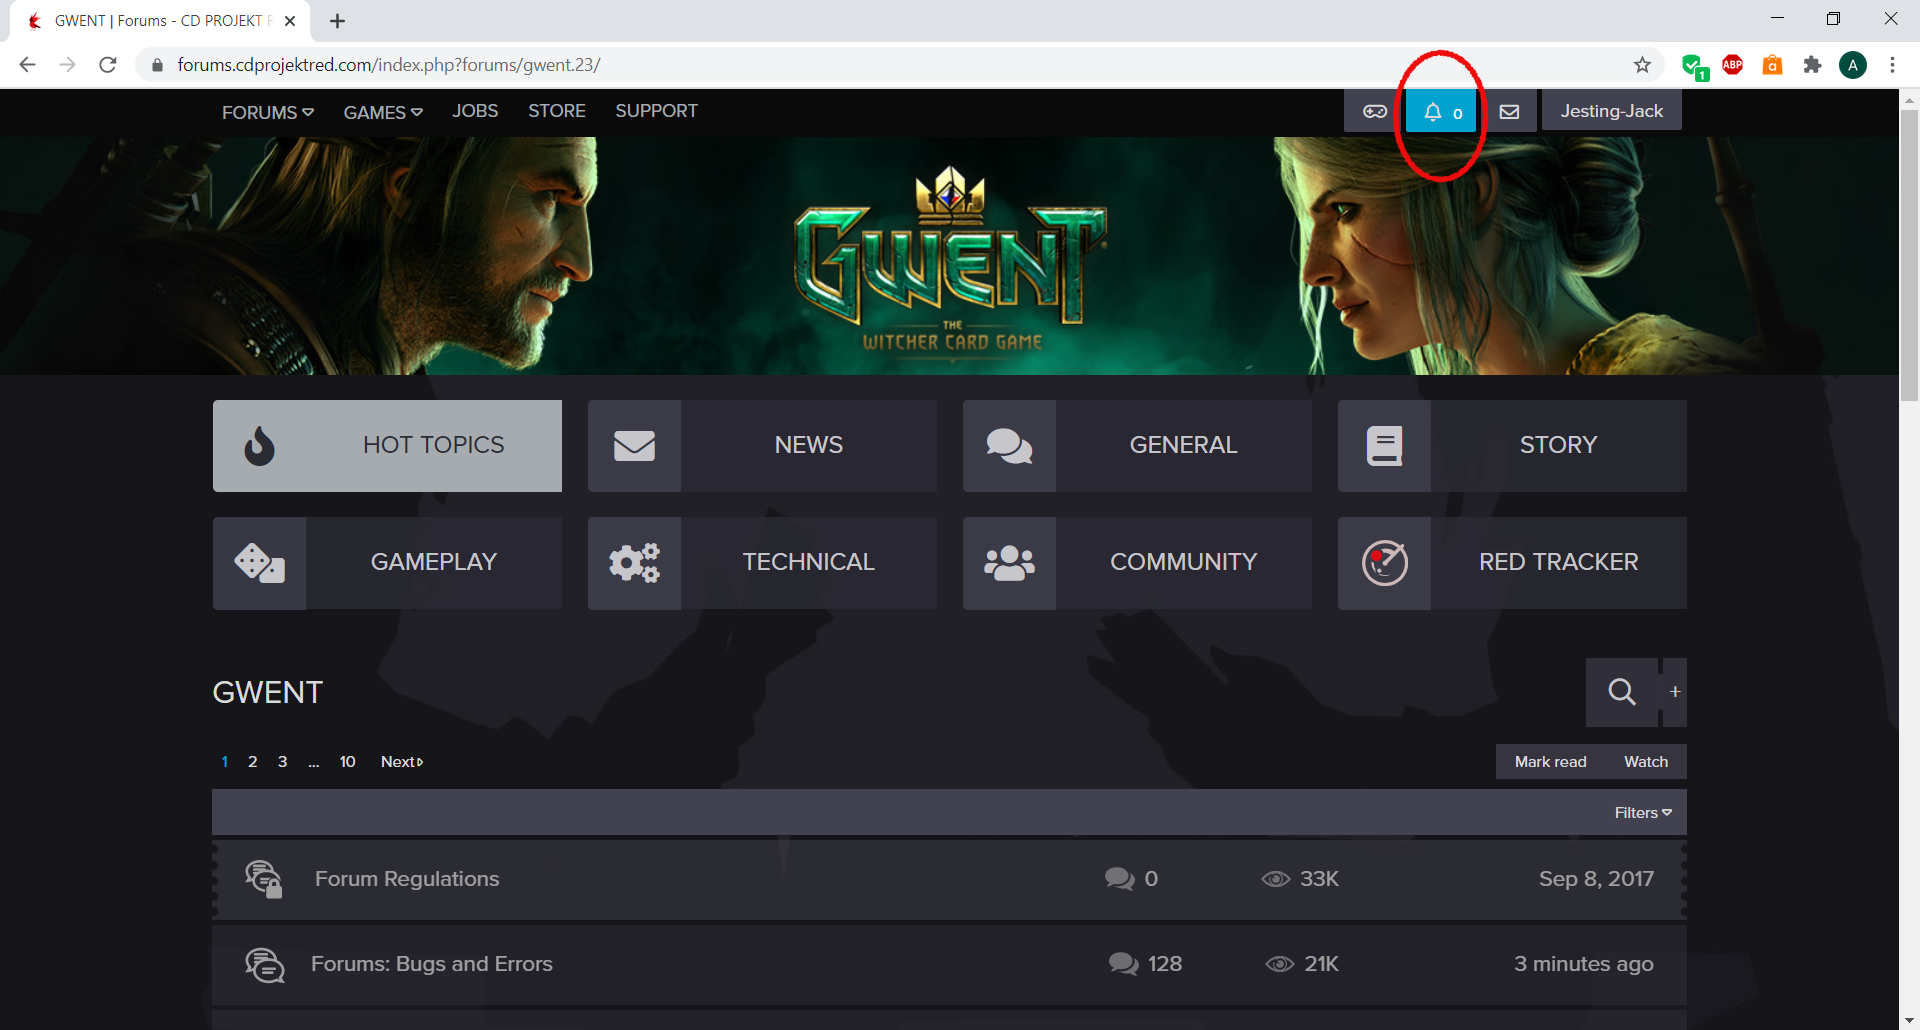 GWENT _ Forums - CD PROJEKT RED.png